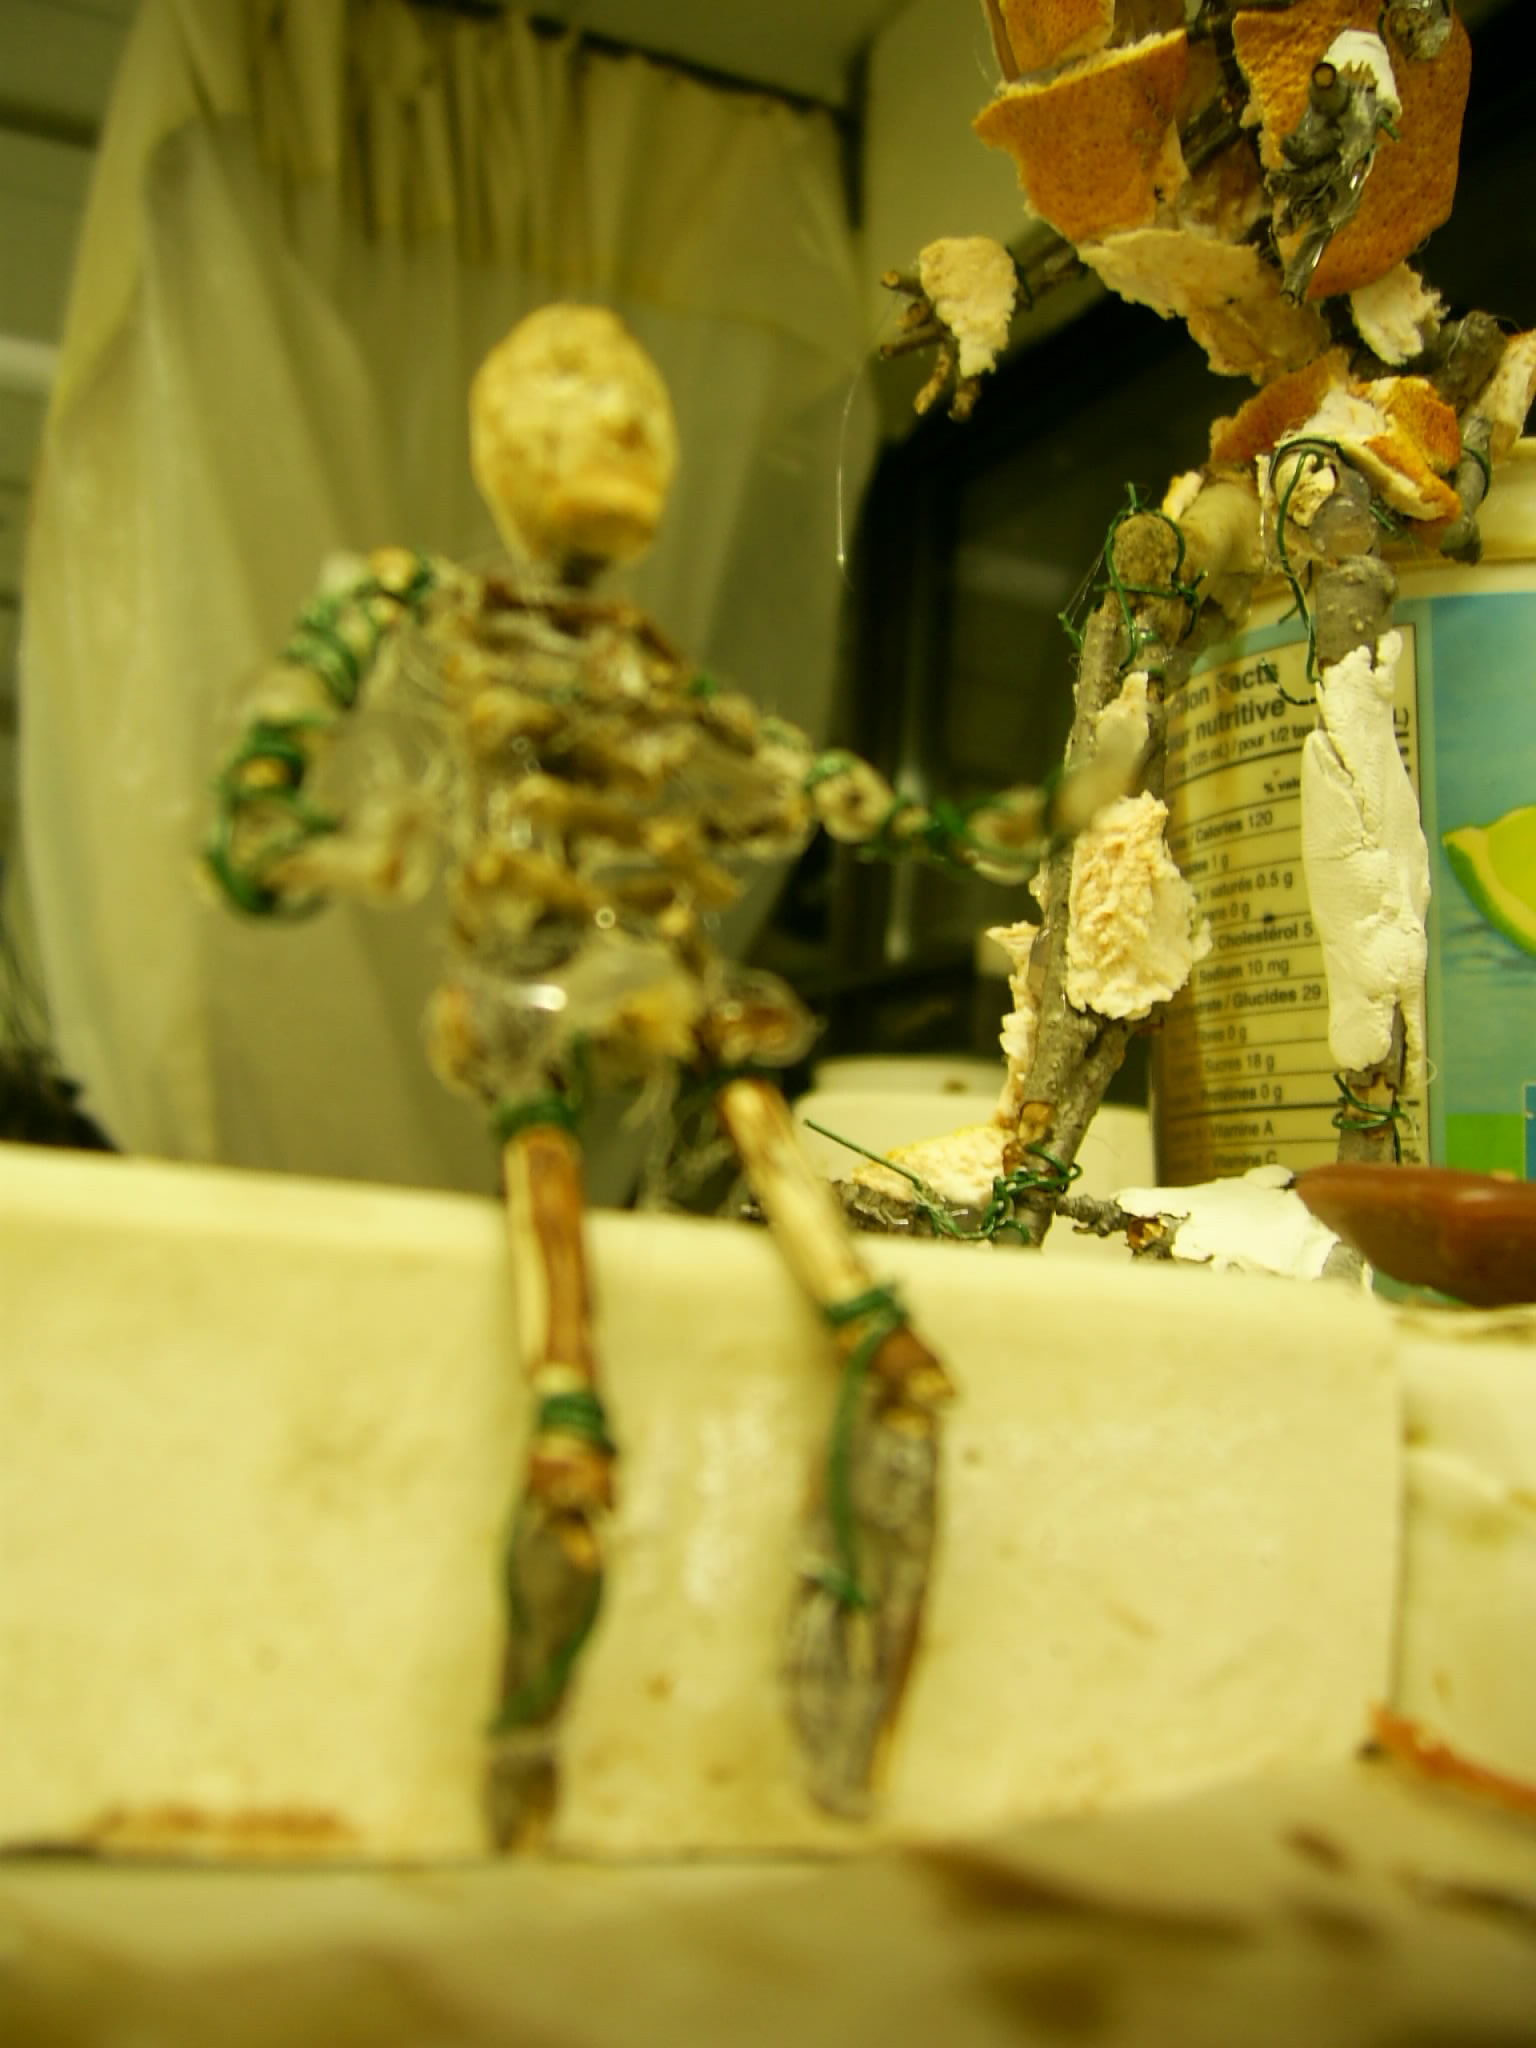 1 of 3 tiny men I made for class, with large scale maquette in background